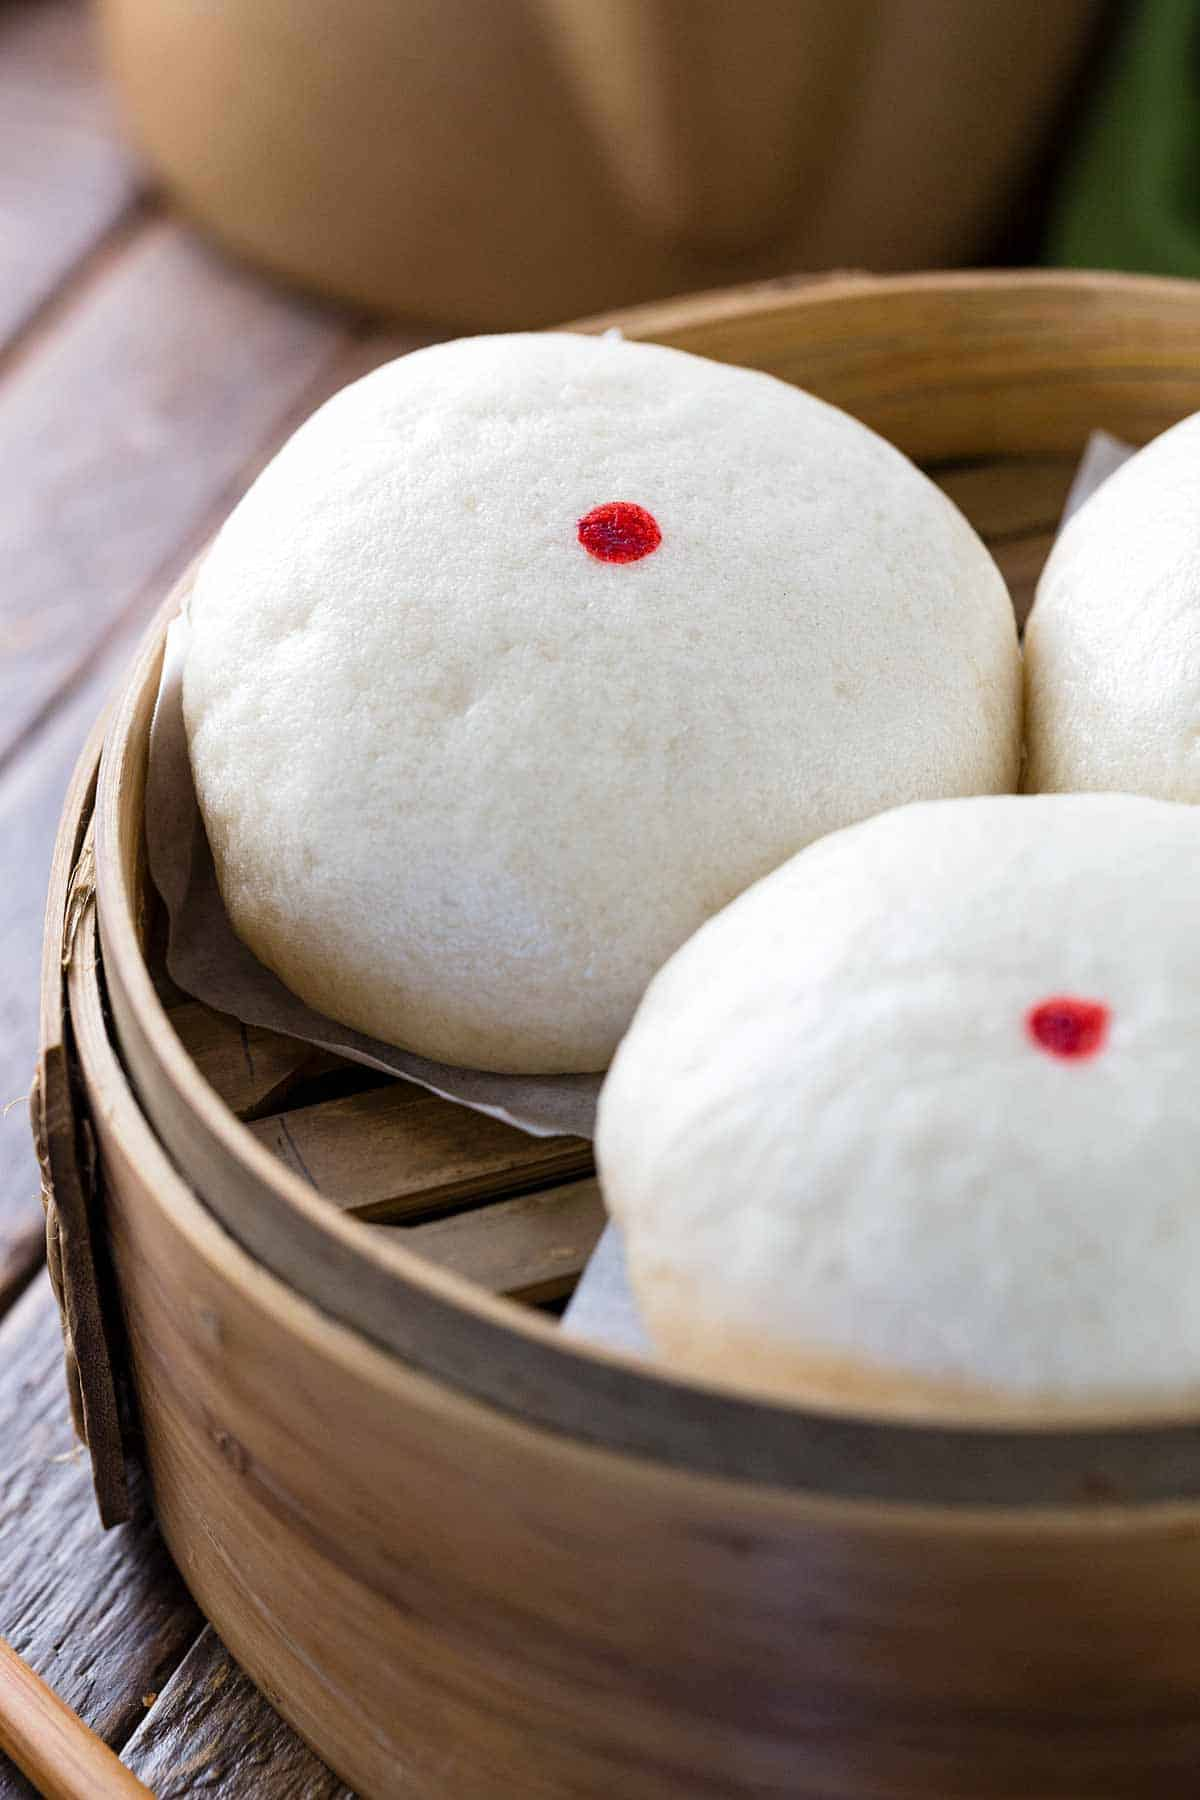 Chinese custard buns with red dots in a wooden steamer basket